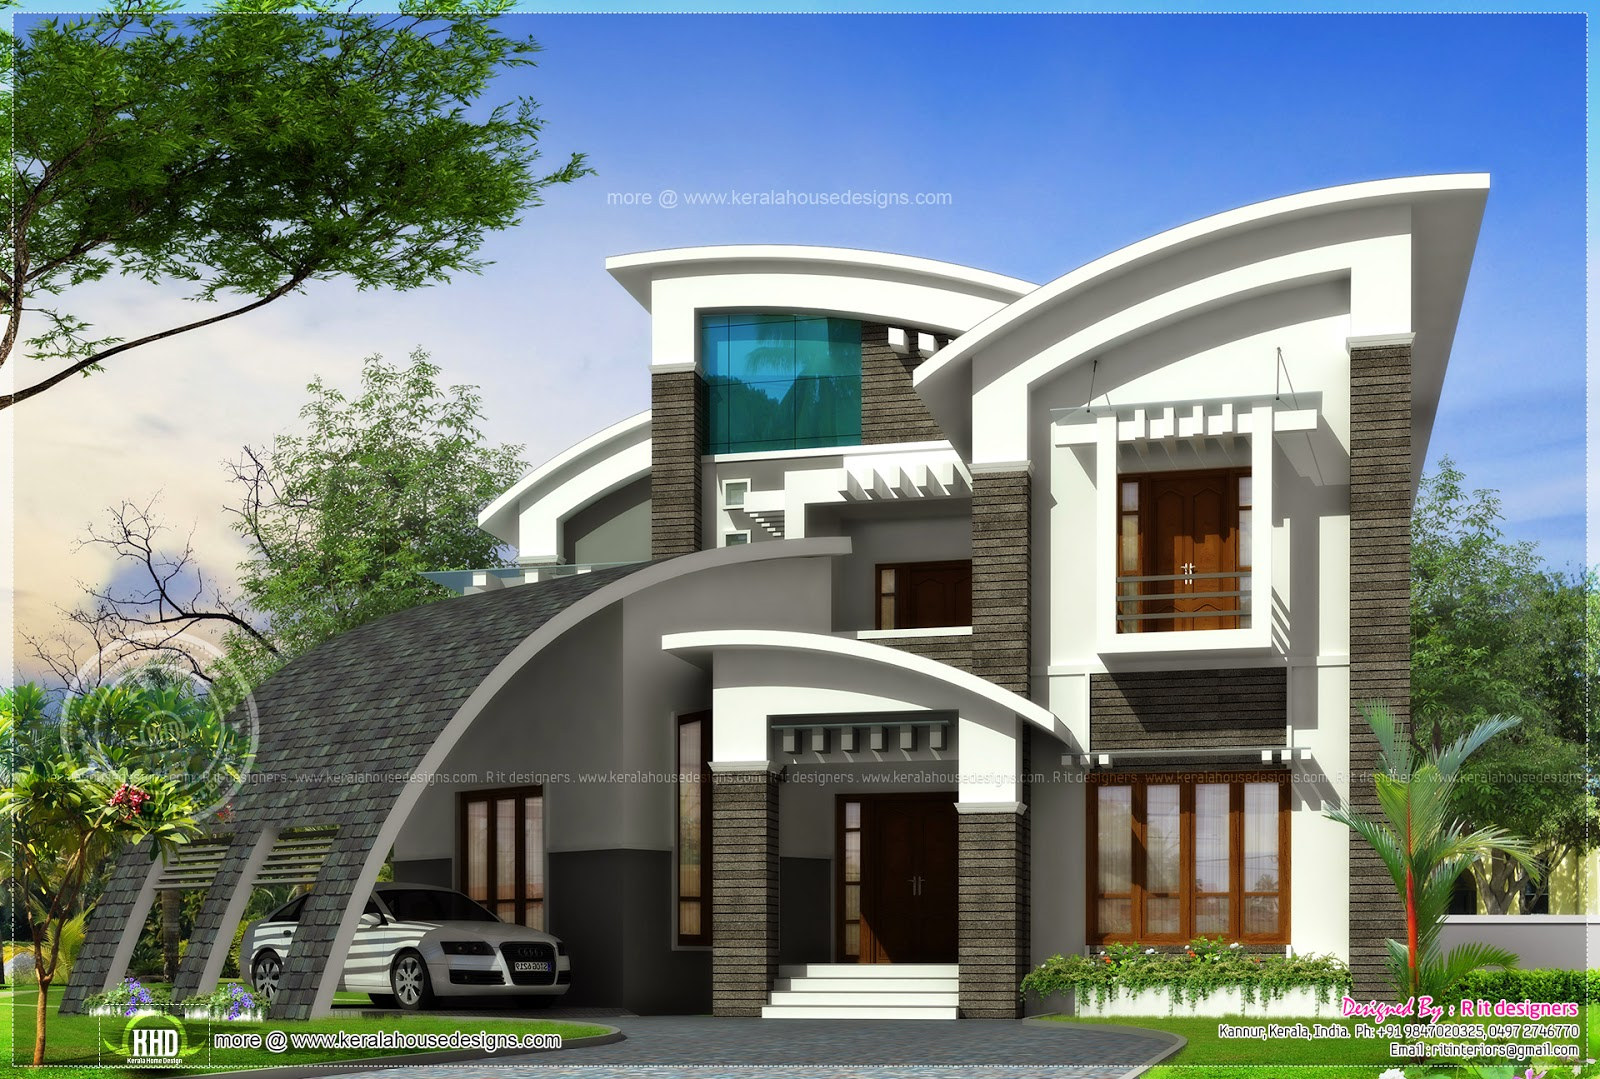 Super luxury ultra modern house design kerala home for Good home designs in india